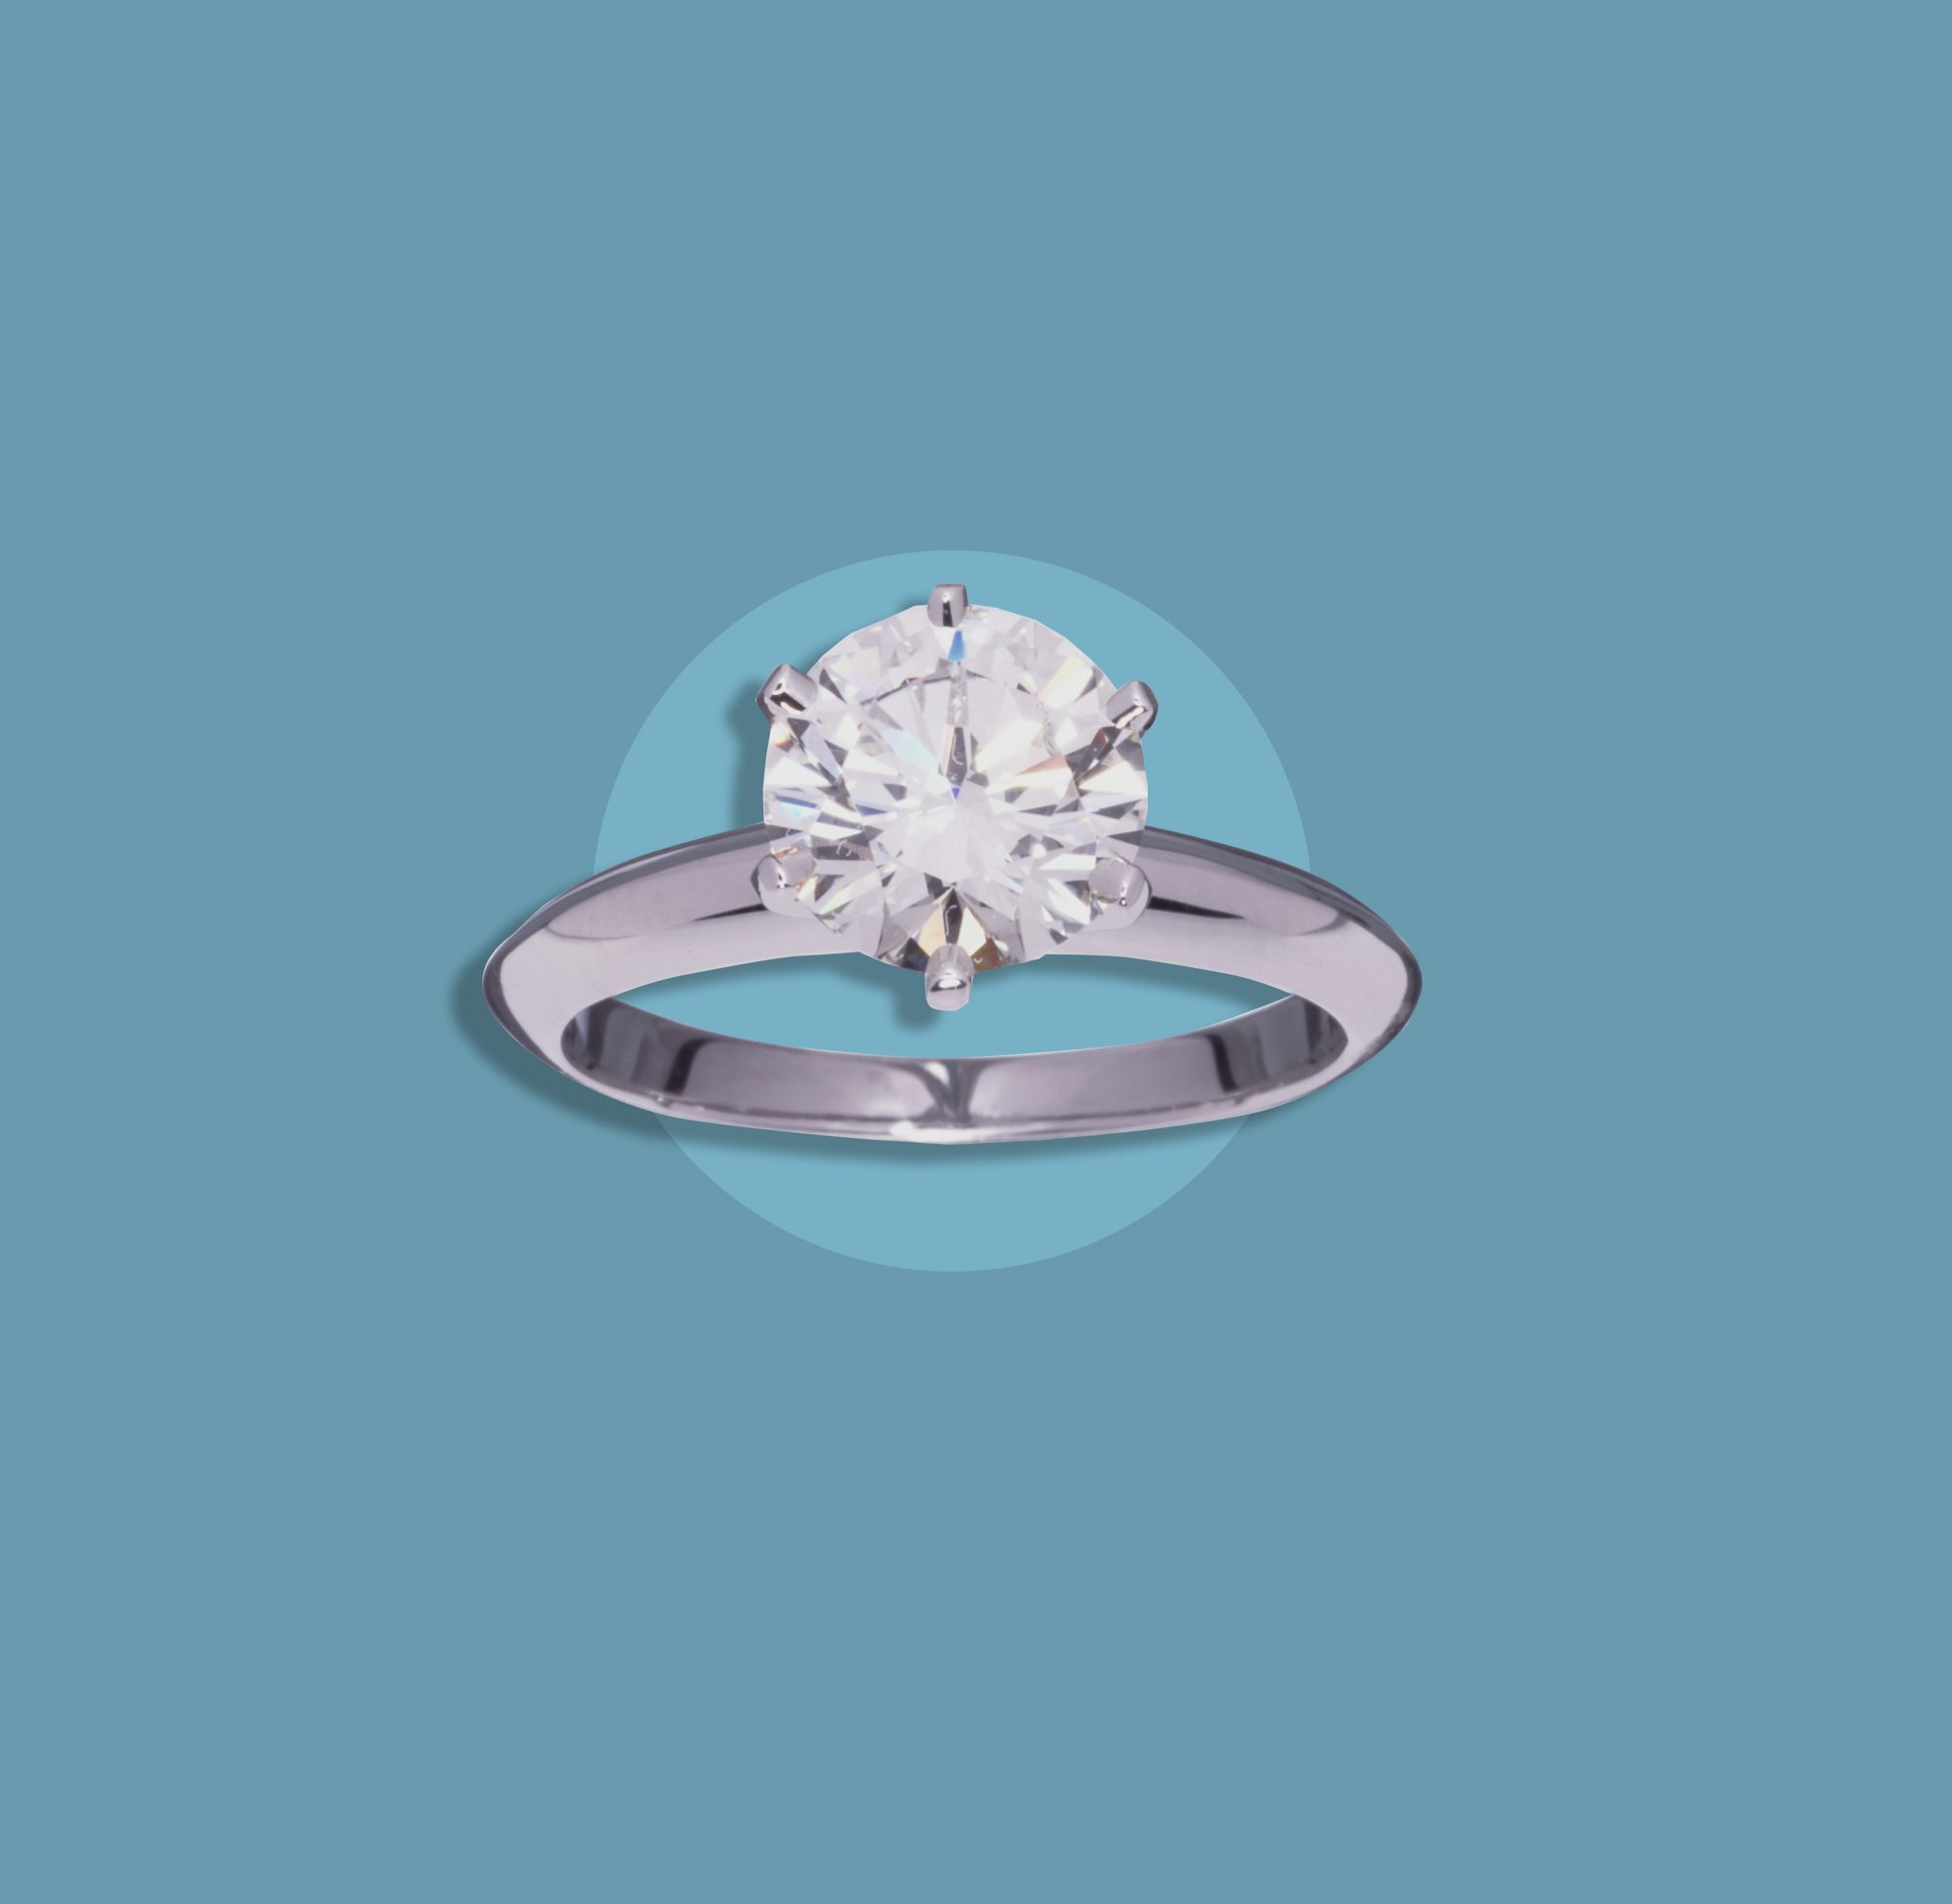 Wedding Planning Tips -- Photo of an engagement ring